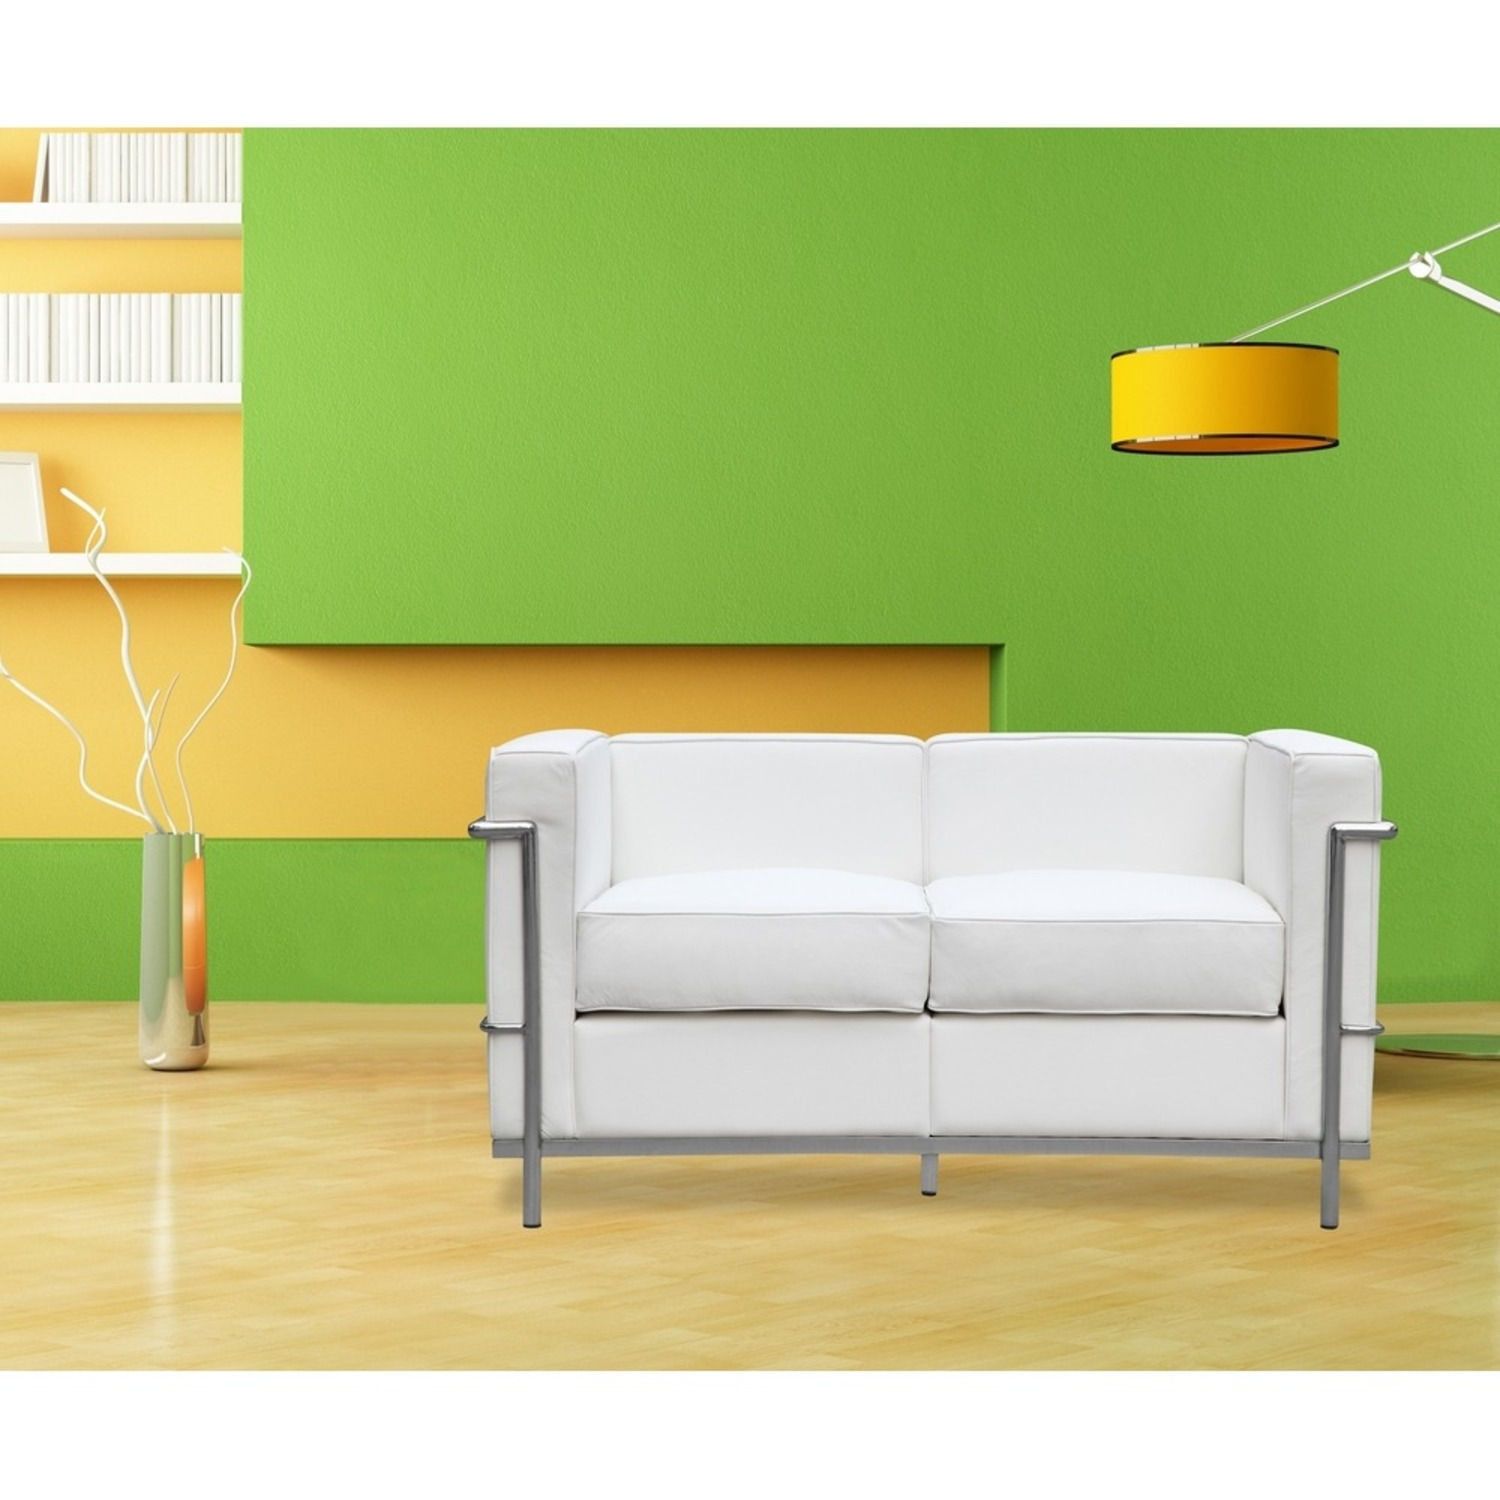 Loveseat In White Leather W/ Stainless Steel Frame - image-6